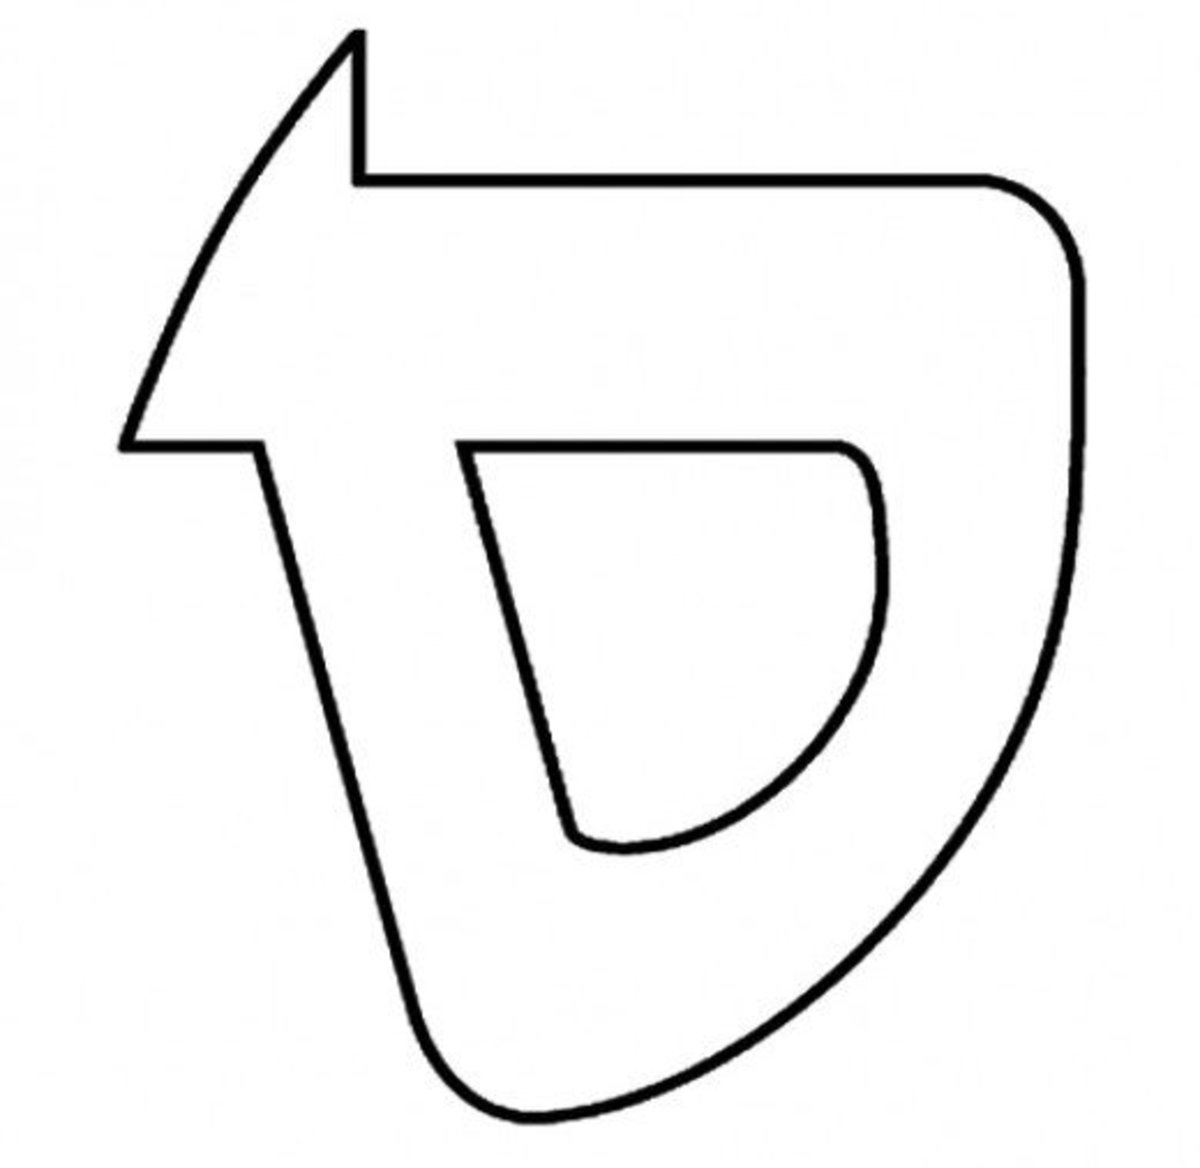 Hebrew Letter Samech Coloring Page - דף צביעה אוֹת סמך